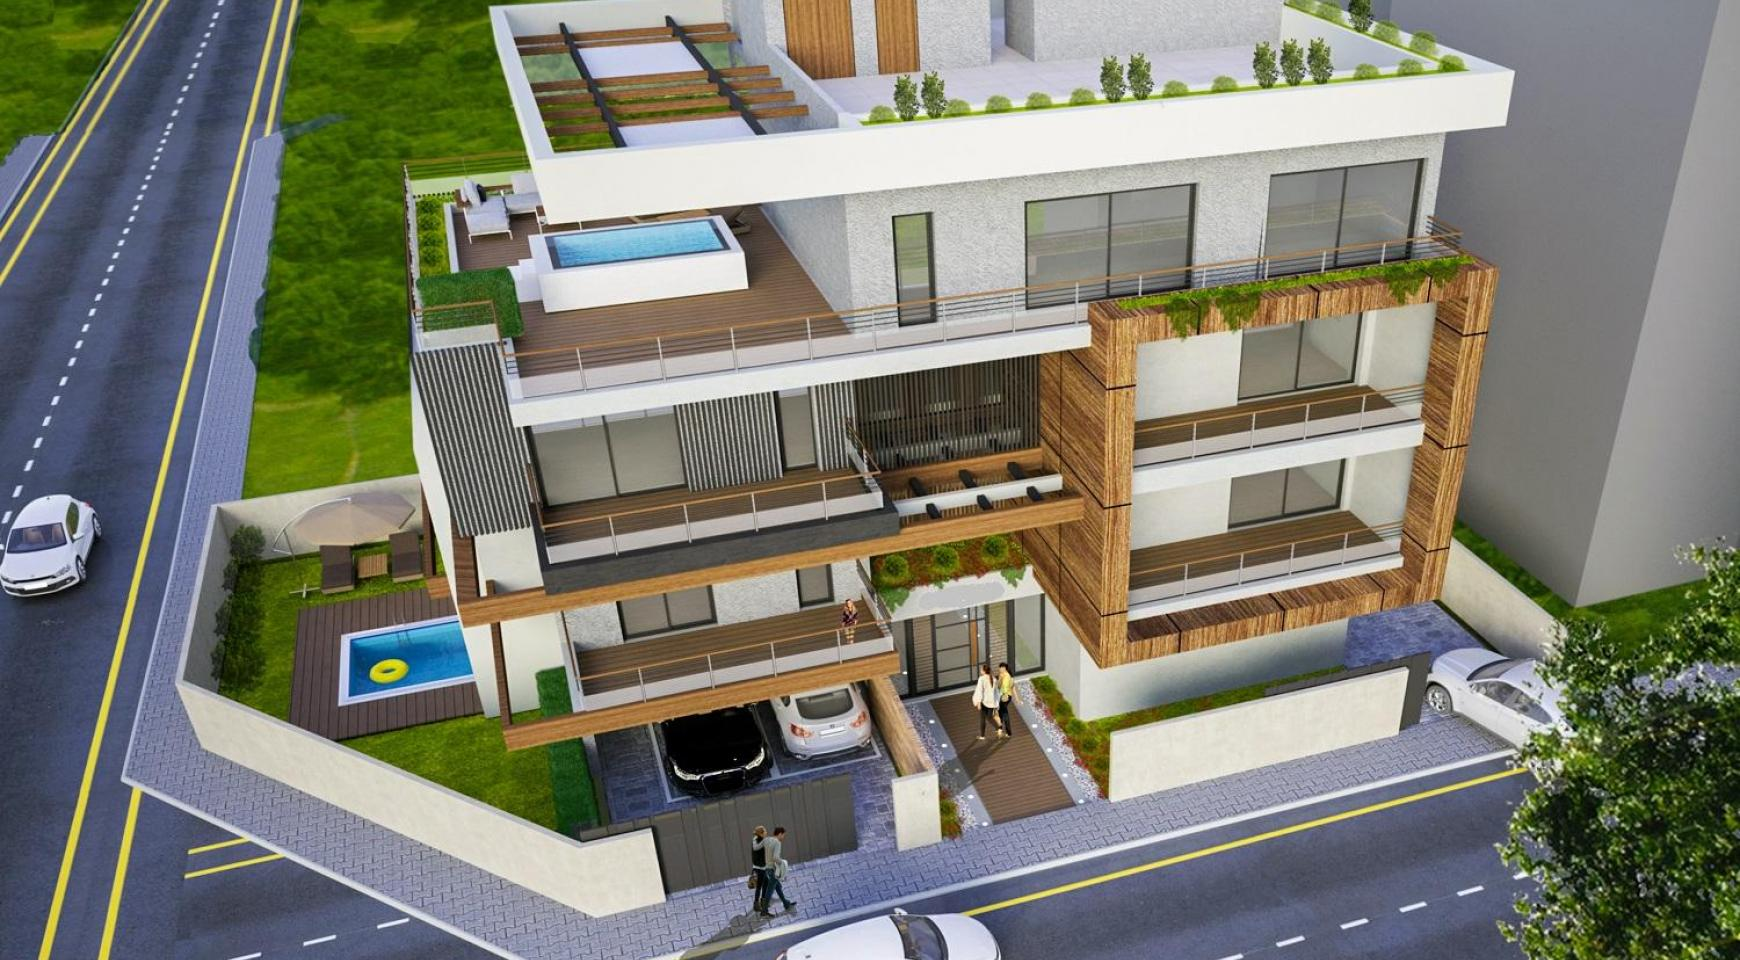 New 2 Bedroom Apartment in a Modern Building in Columbia Area - 3